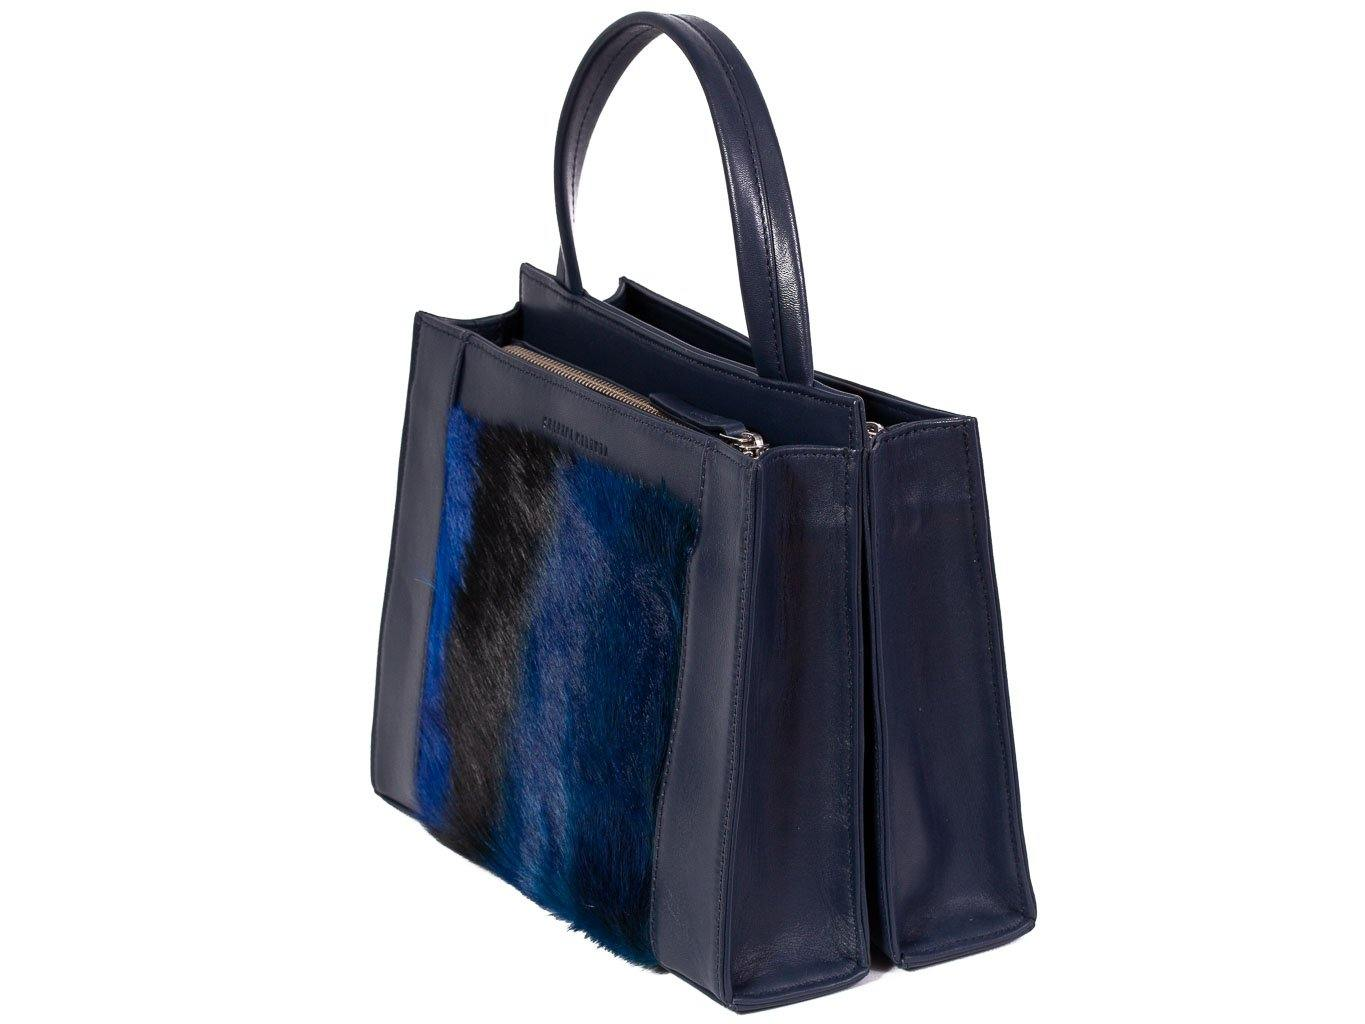 Top Handle Springbok Handbag in Navy Blue with a stripe feature by Sherene Melinda front